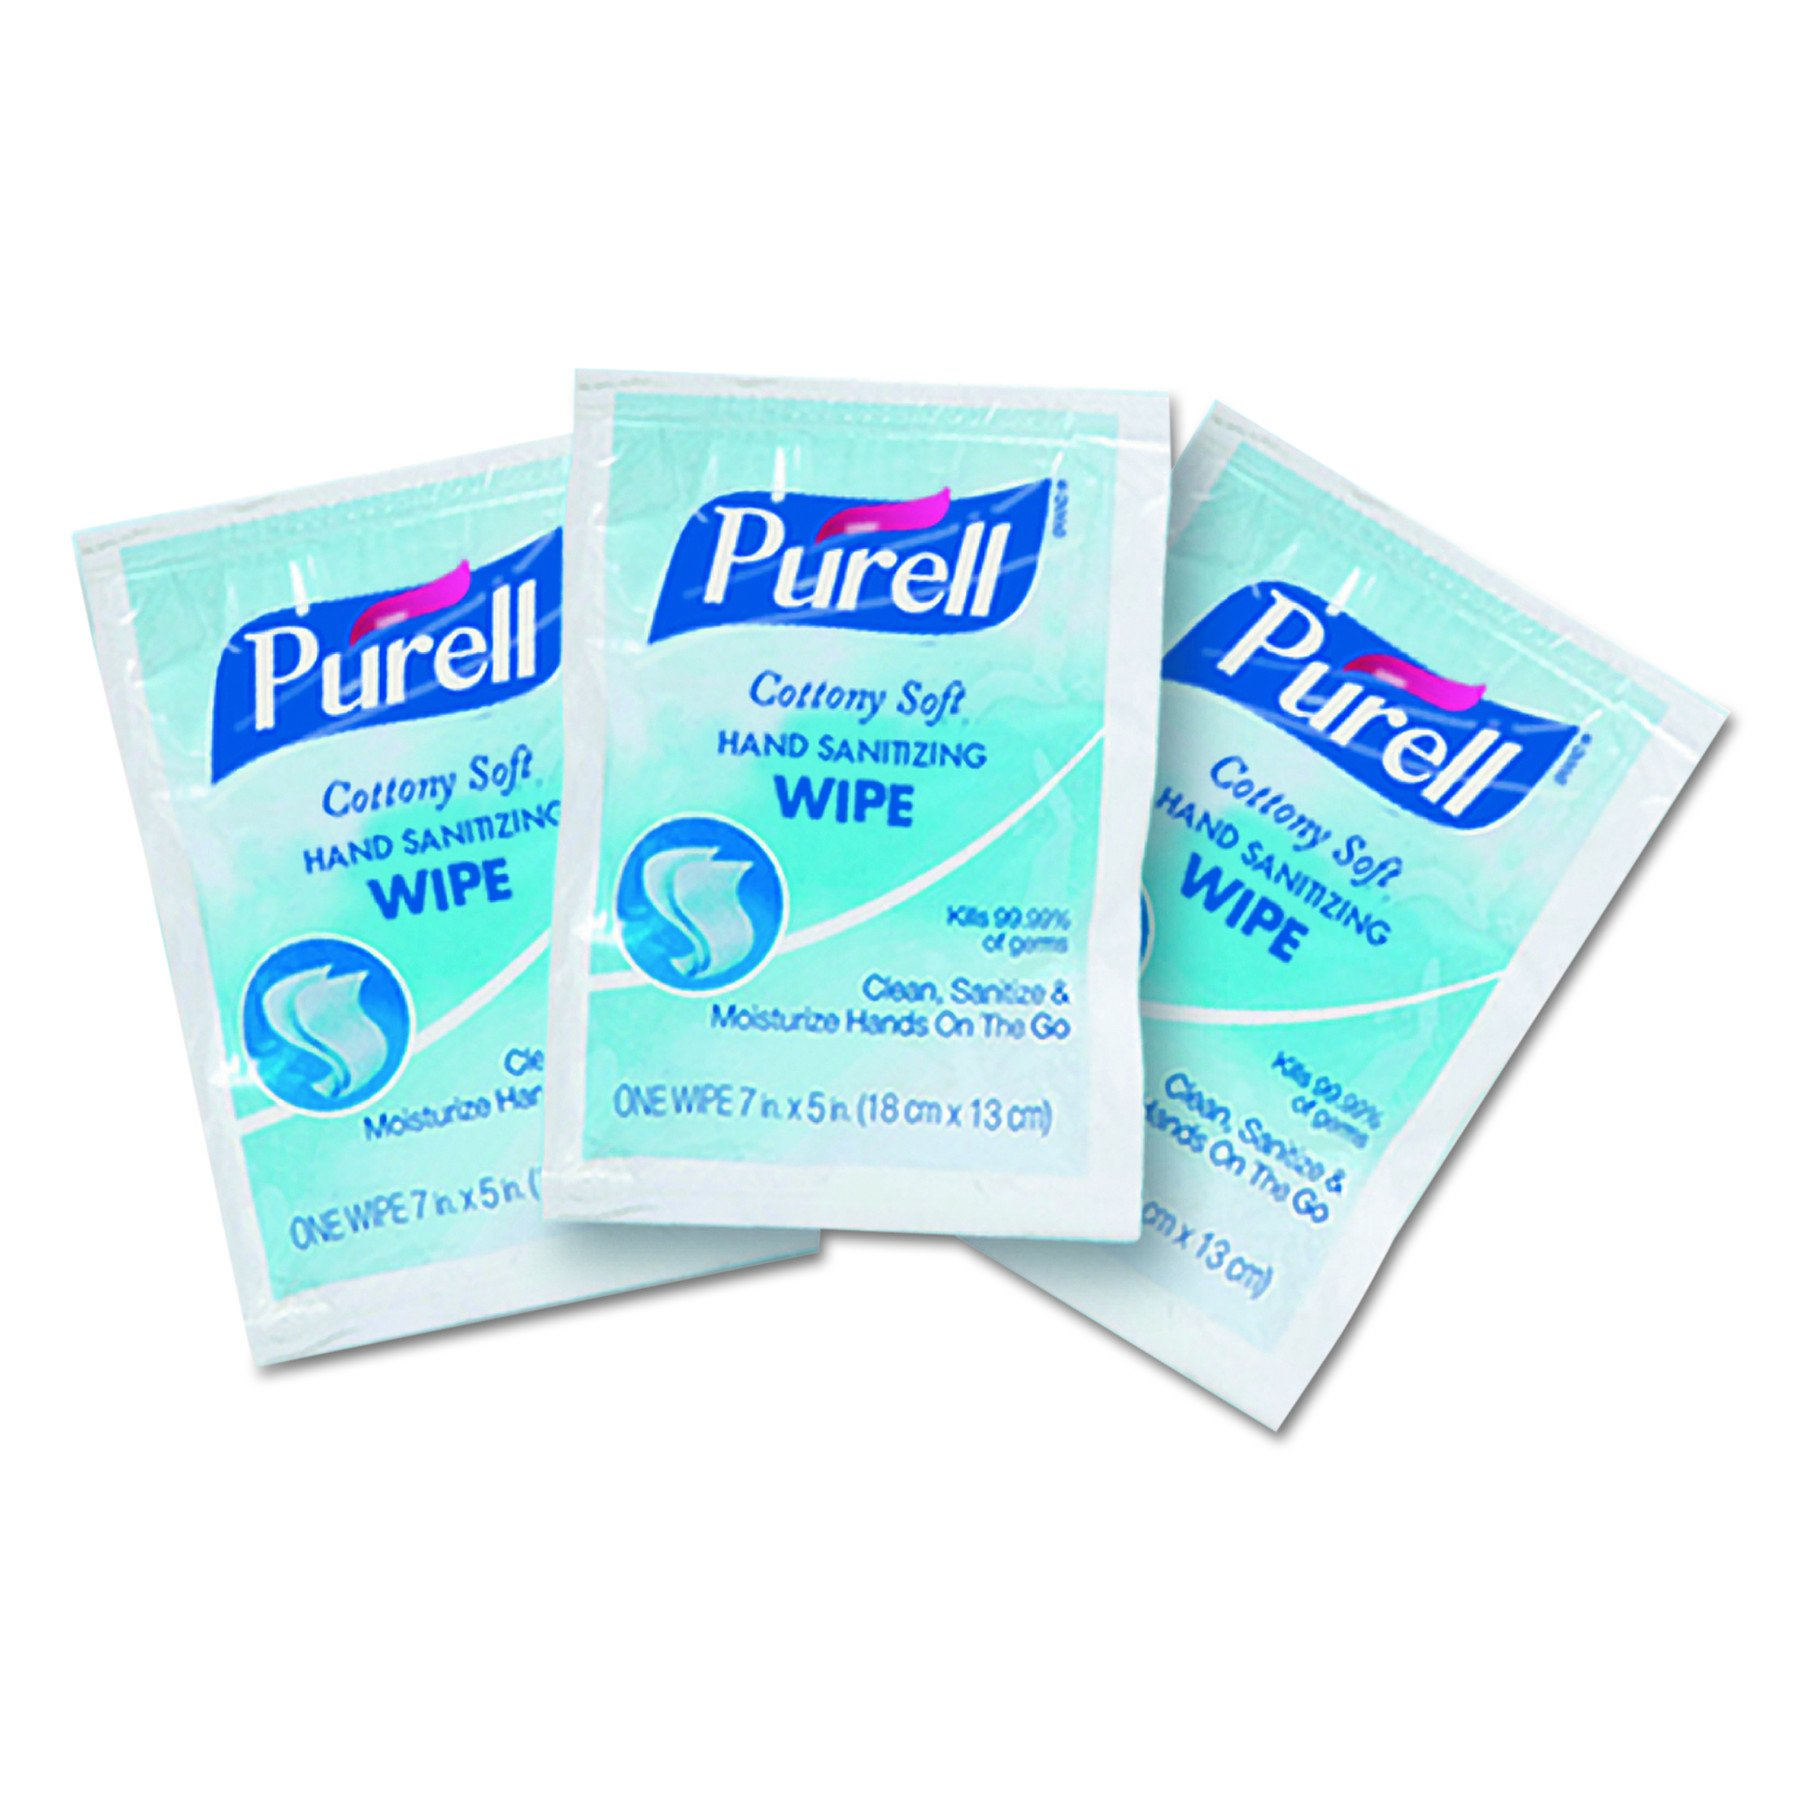 Purell 9026-1M Cottony Soft Sanitizing Wipes (1,000 per Case) by Purell